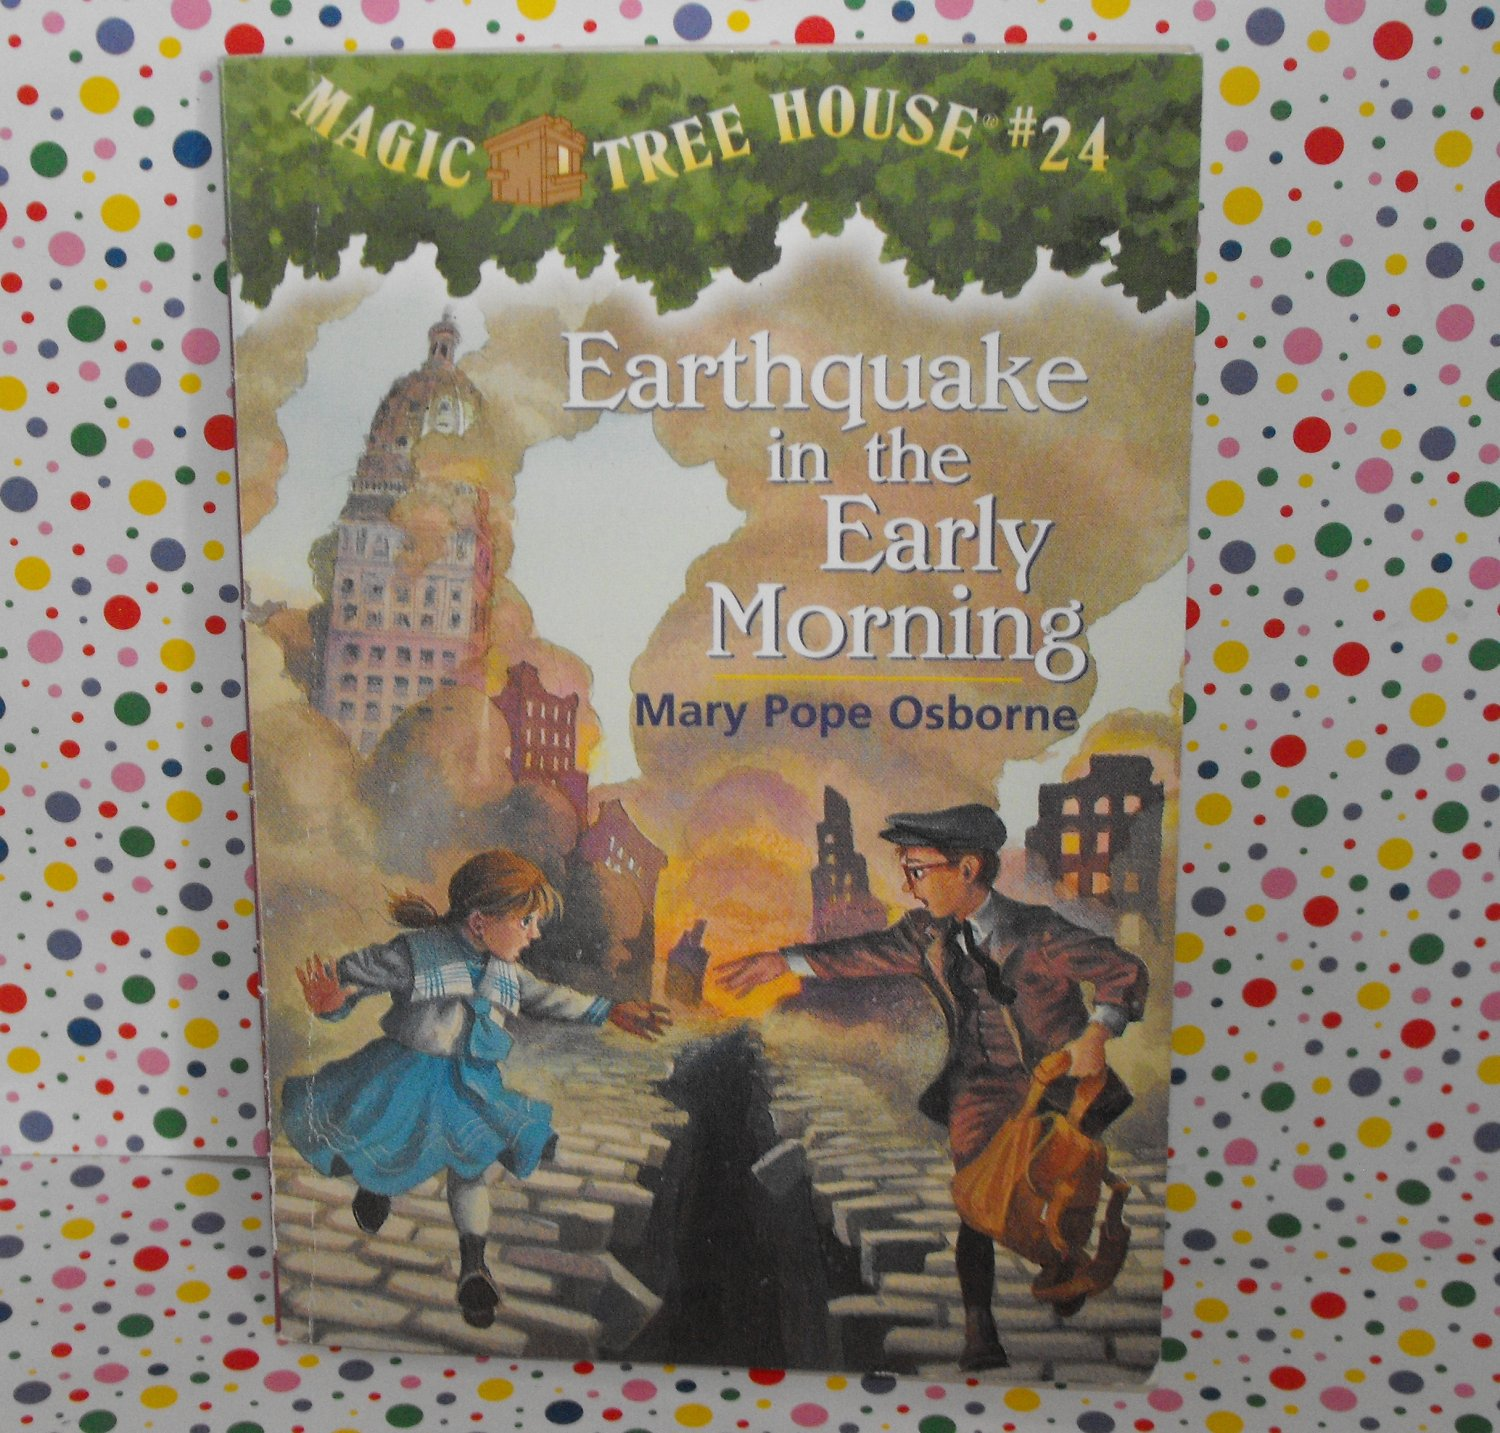 Magic Tree House Earthquake in the Early Morning #24